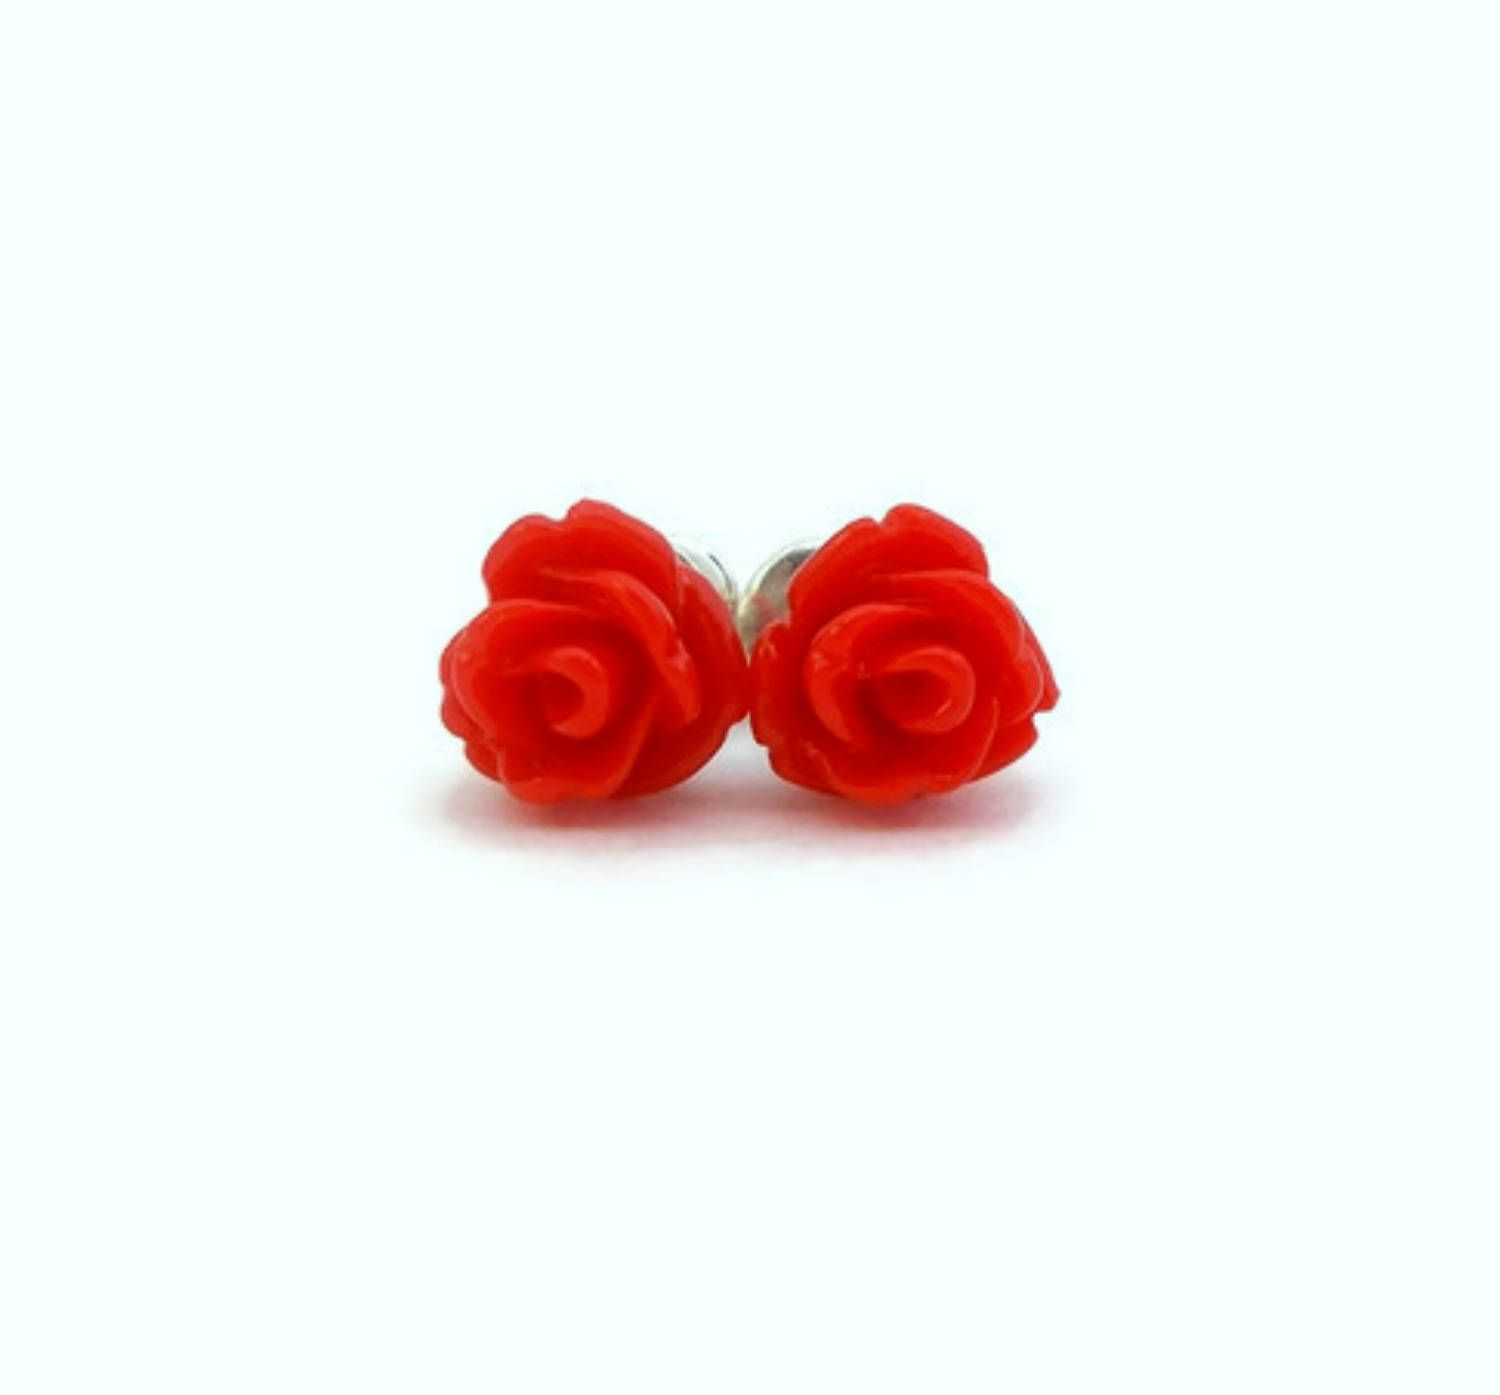 Tiny Stud Earring Red Rose Earrings Cute Studs Y For Sensitive Ears Tween S Rosette